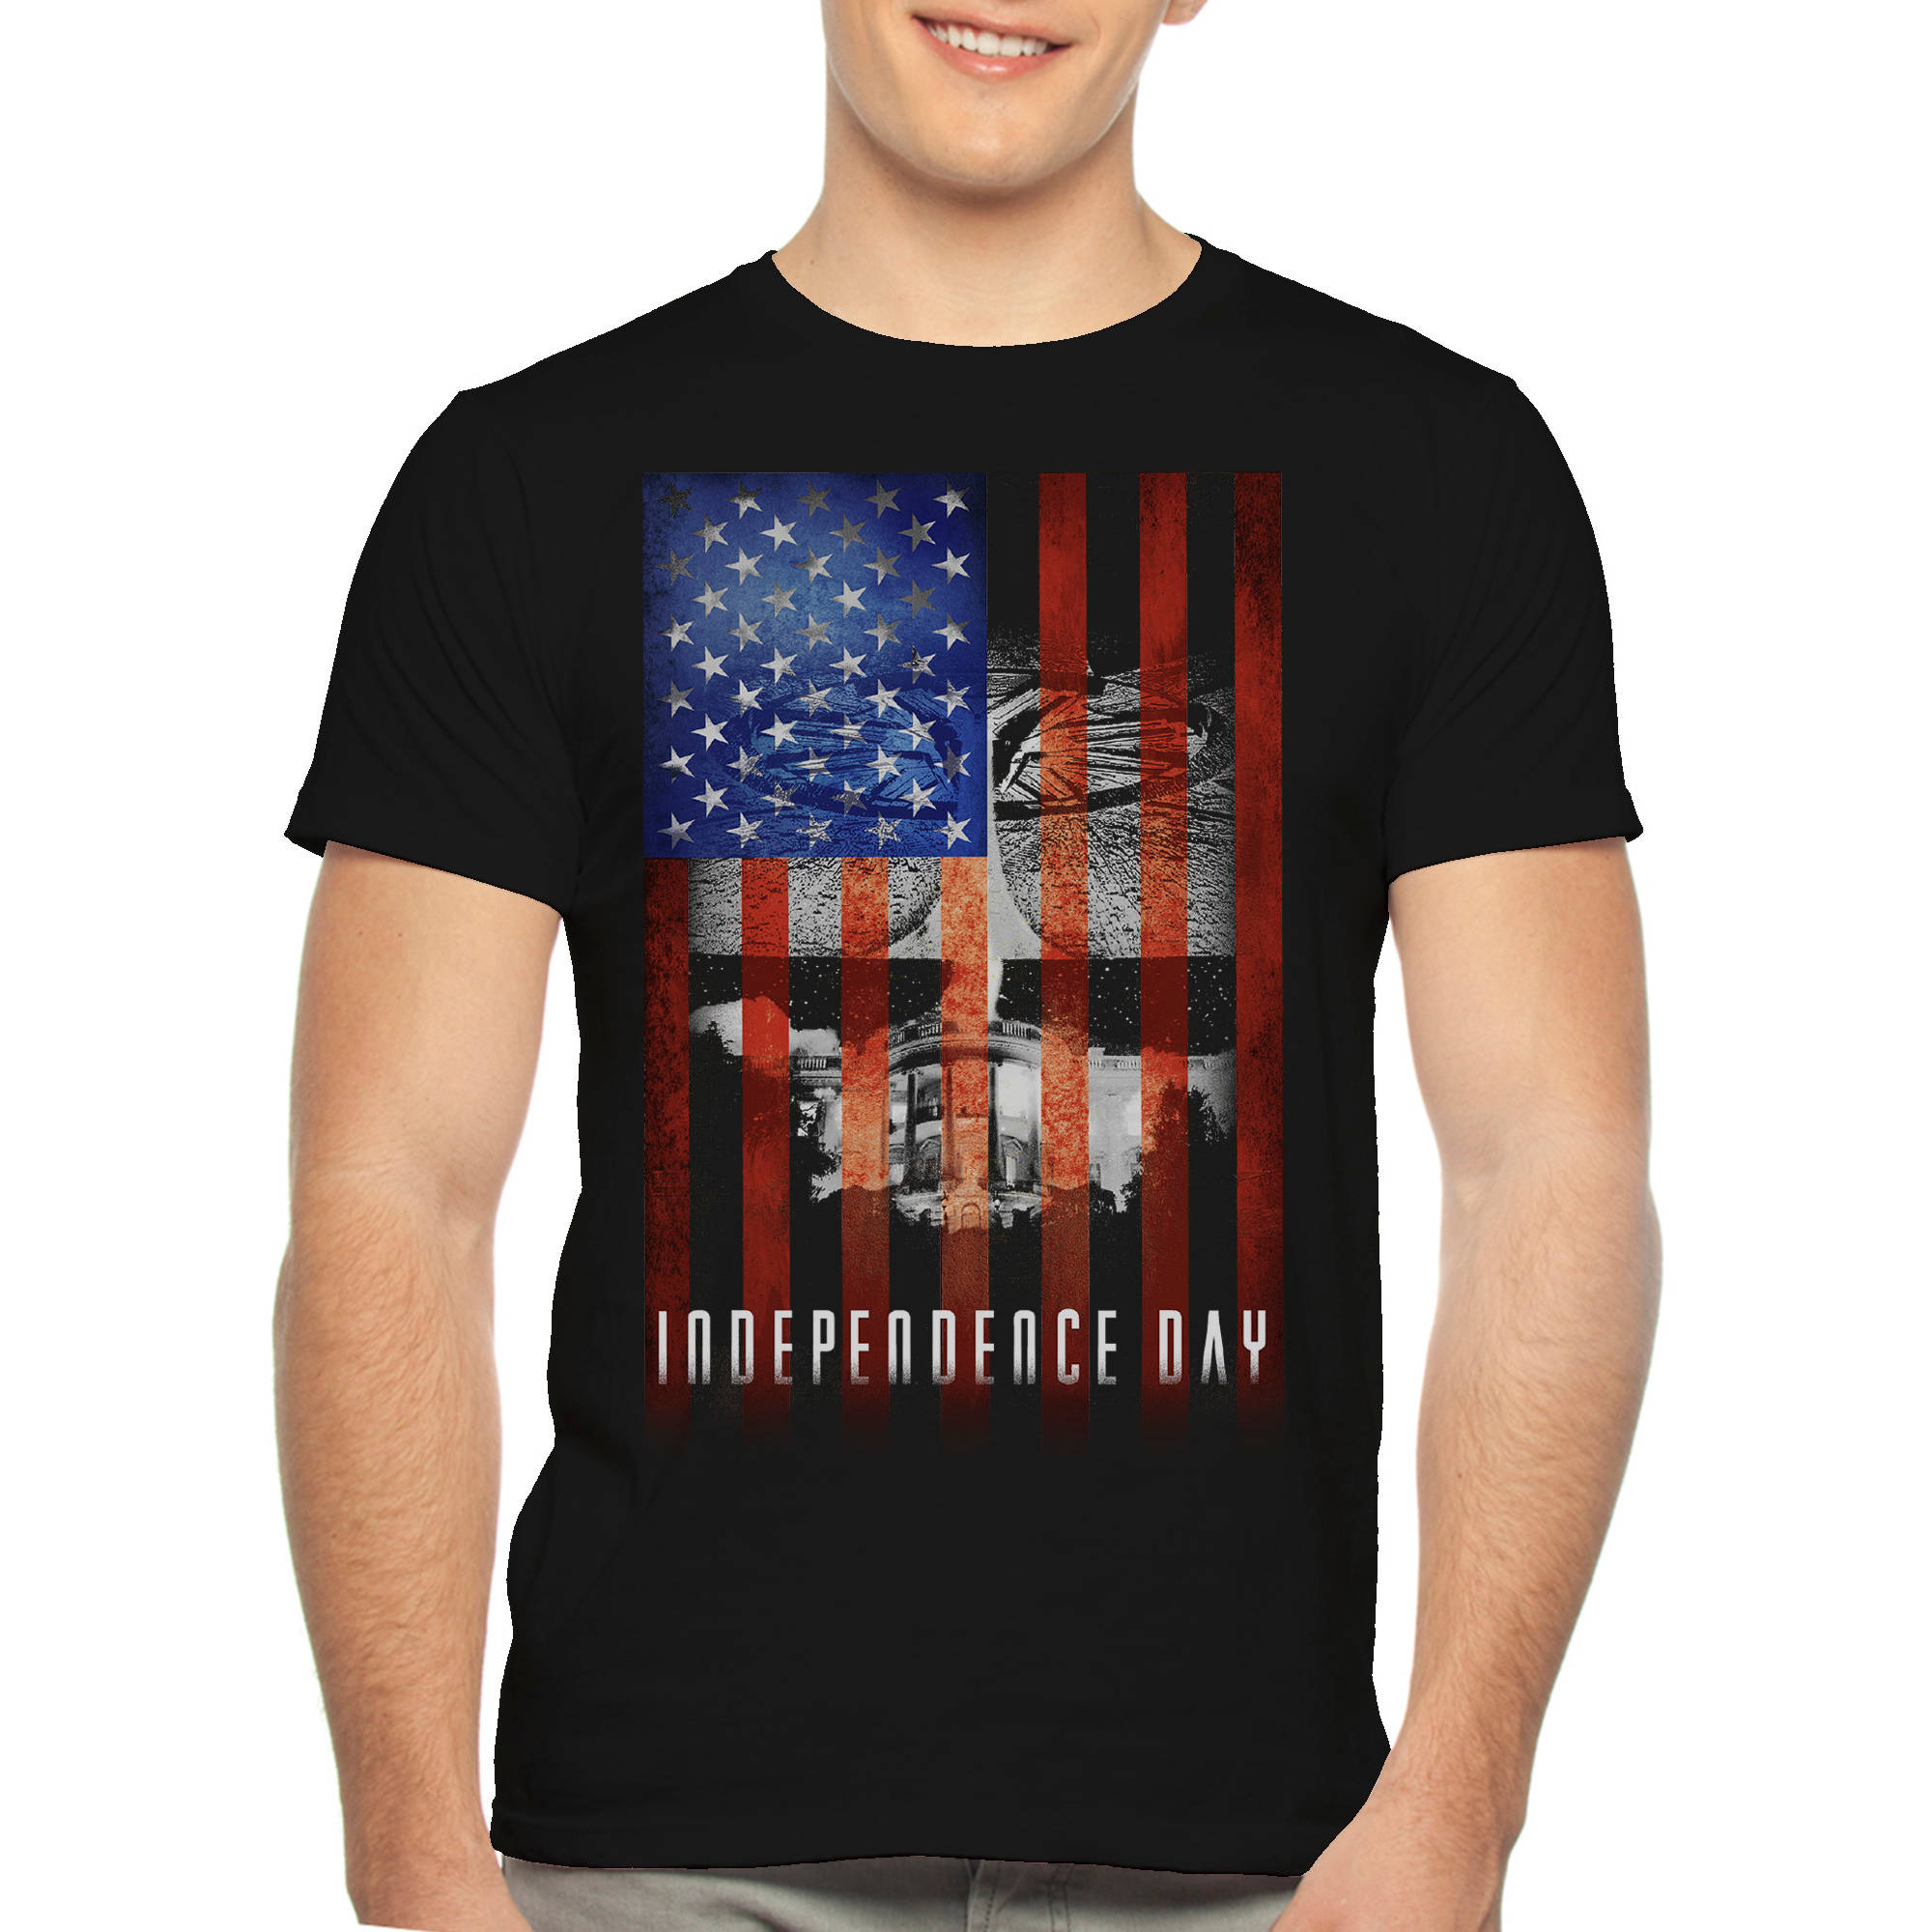 Independence Day Movie Men's Graphic Tee